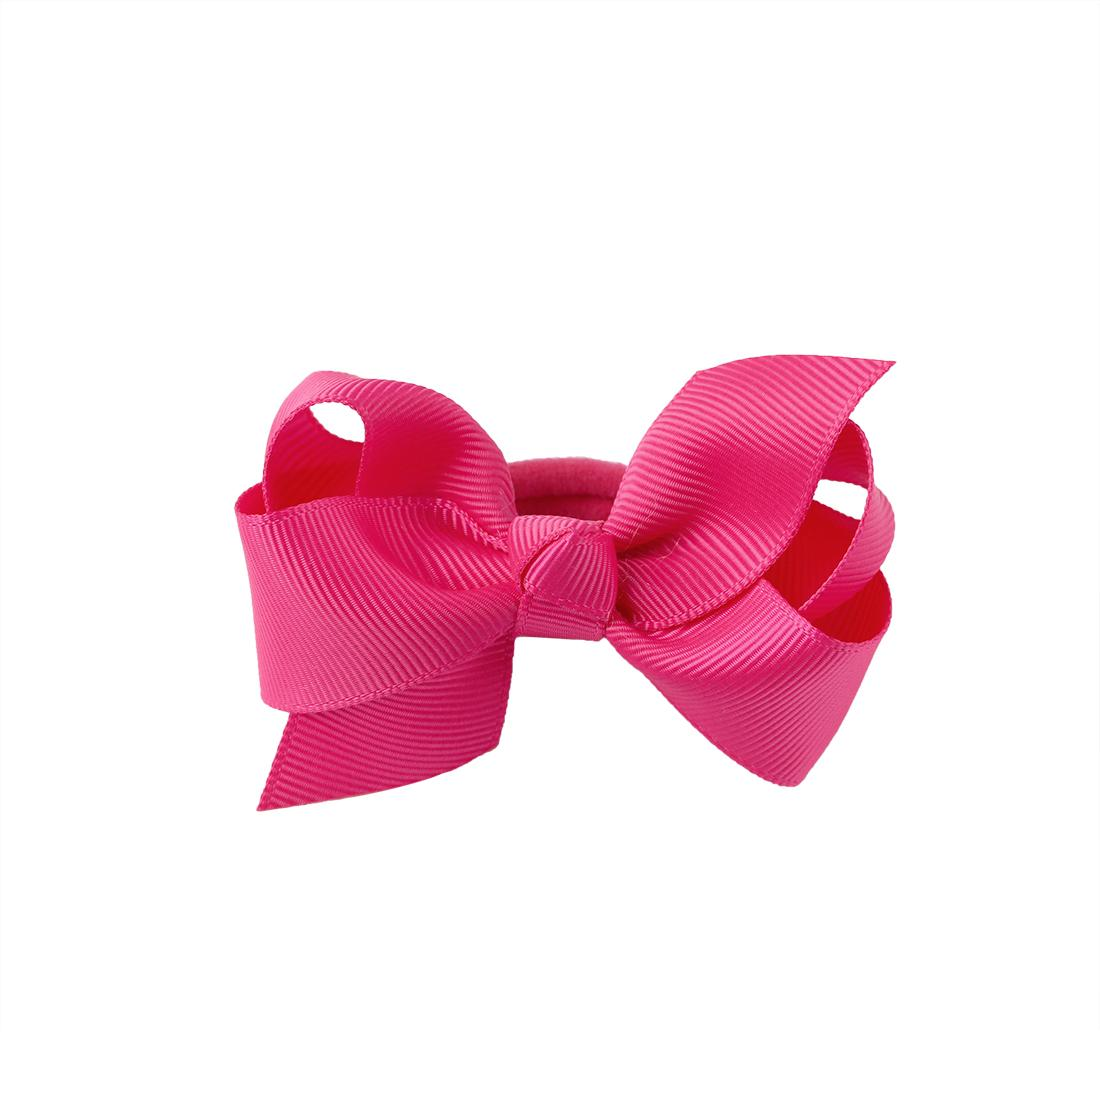 2 Pieces 3 Inch Ribbon Hair Bows Elastic Hairbands Kids Cute Bows Hair Ropes Ties for Girls Ponytail Holder Hair Accessories